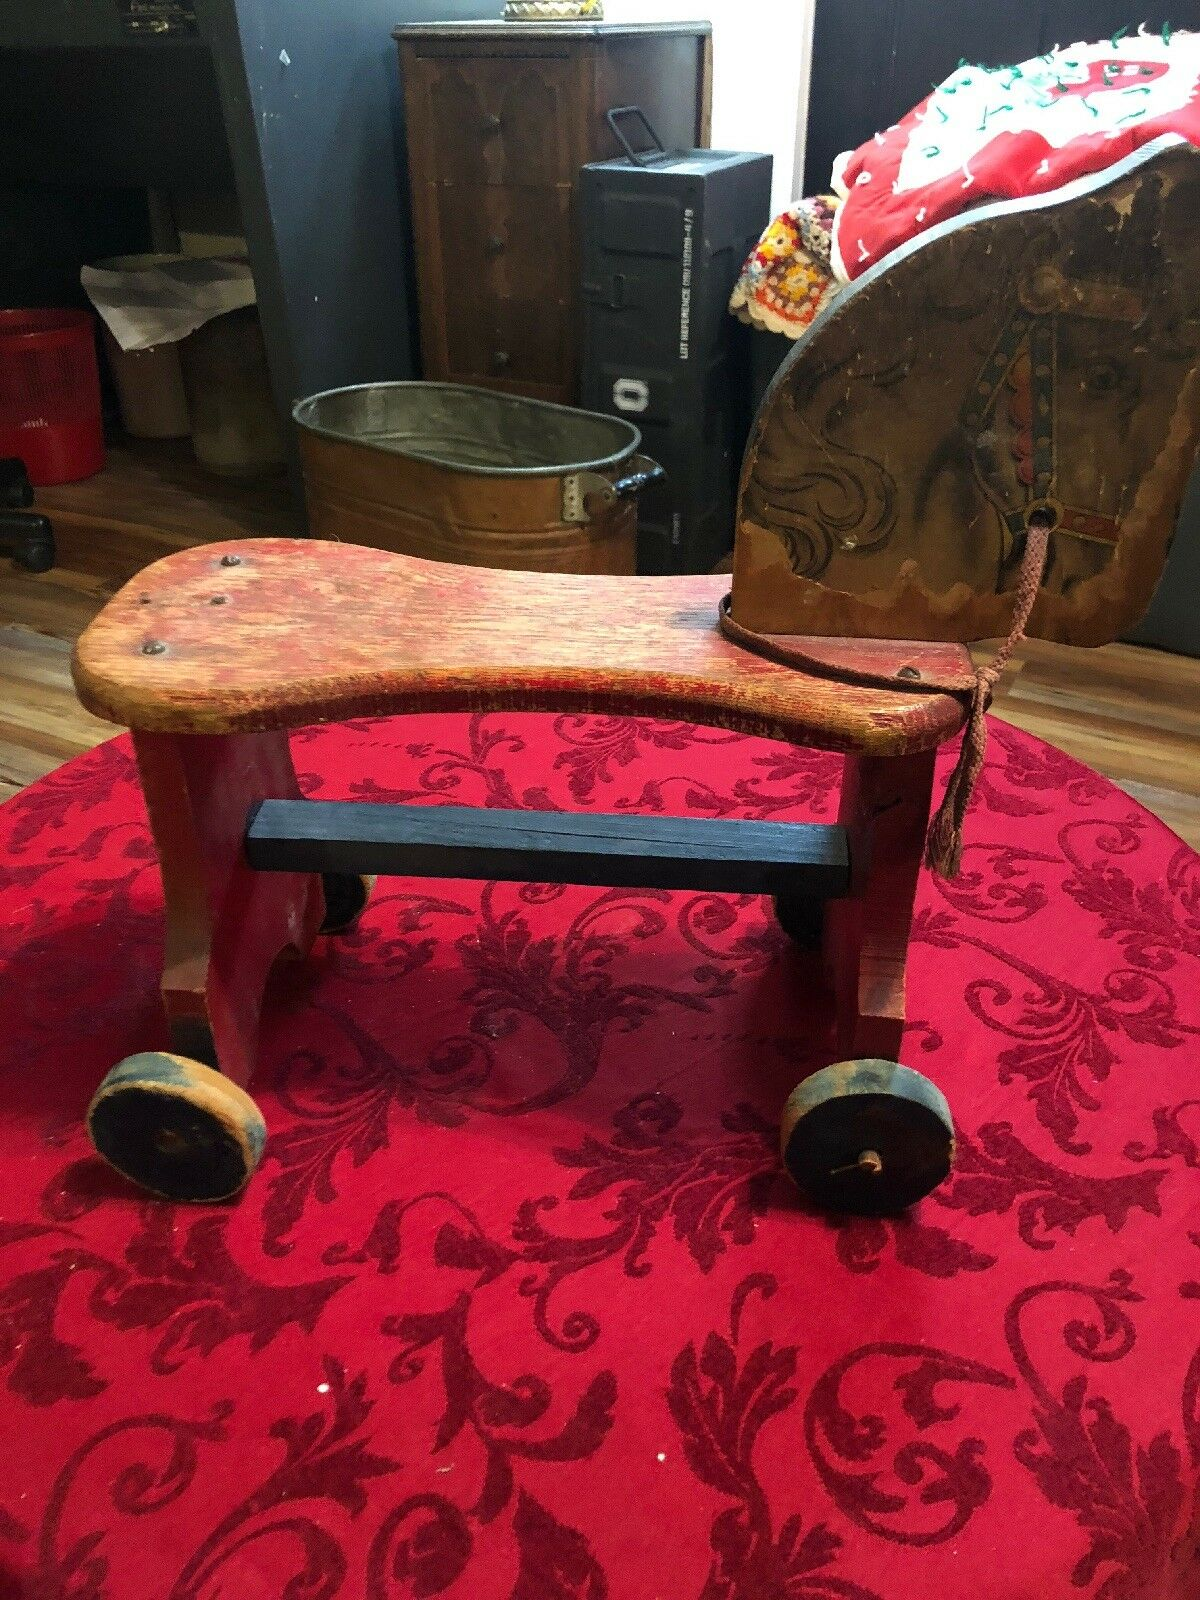 VINTAGE PONY Rolling Horse on Wheels Toddler Size Size Size 1-3 yrs 1930's c83e46